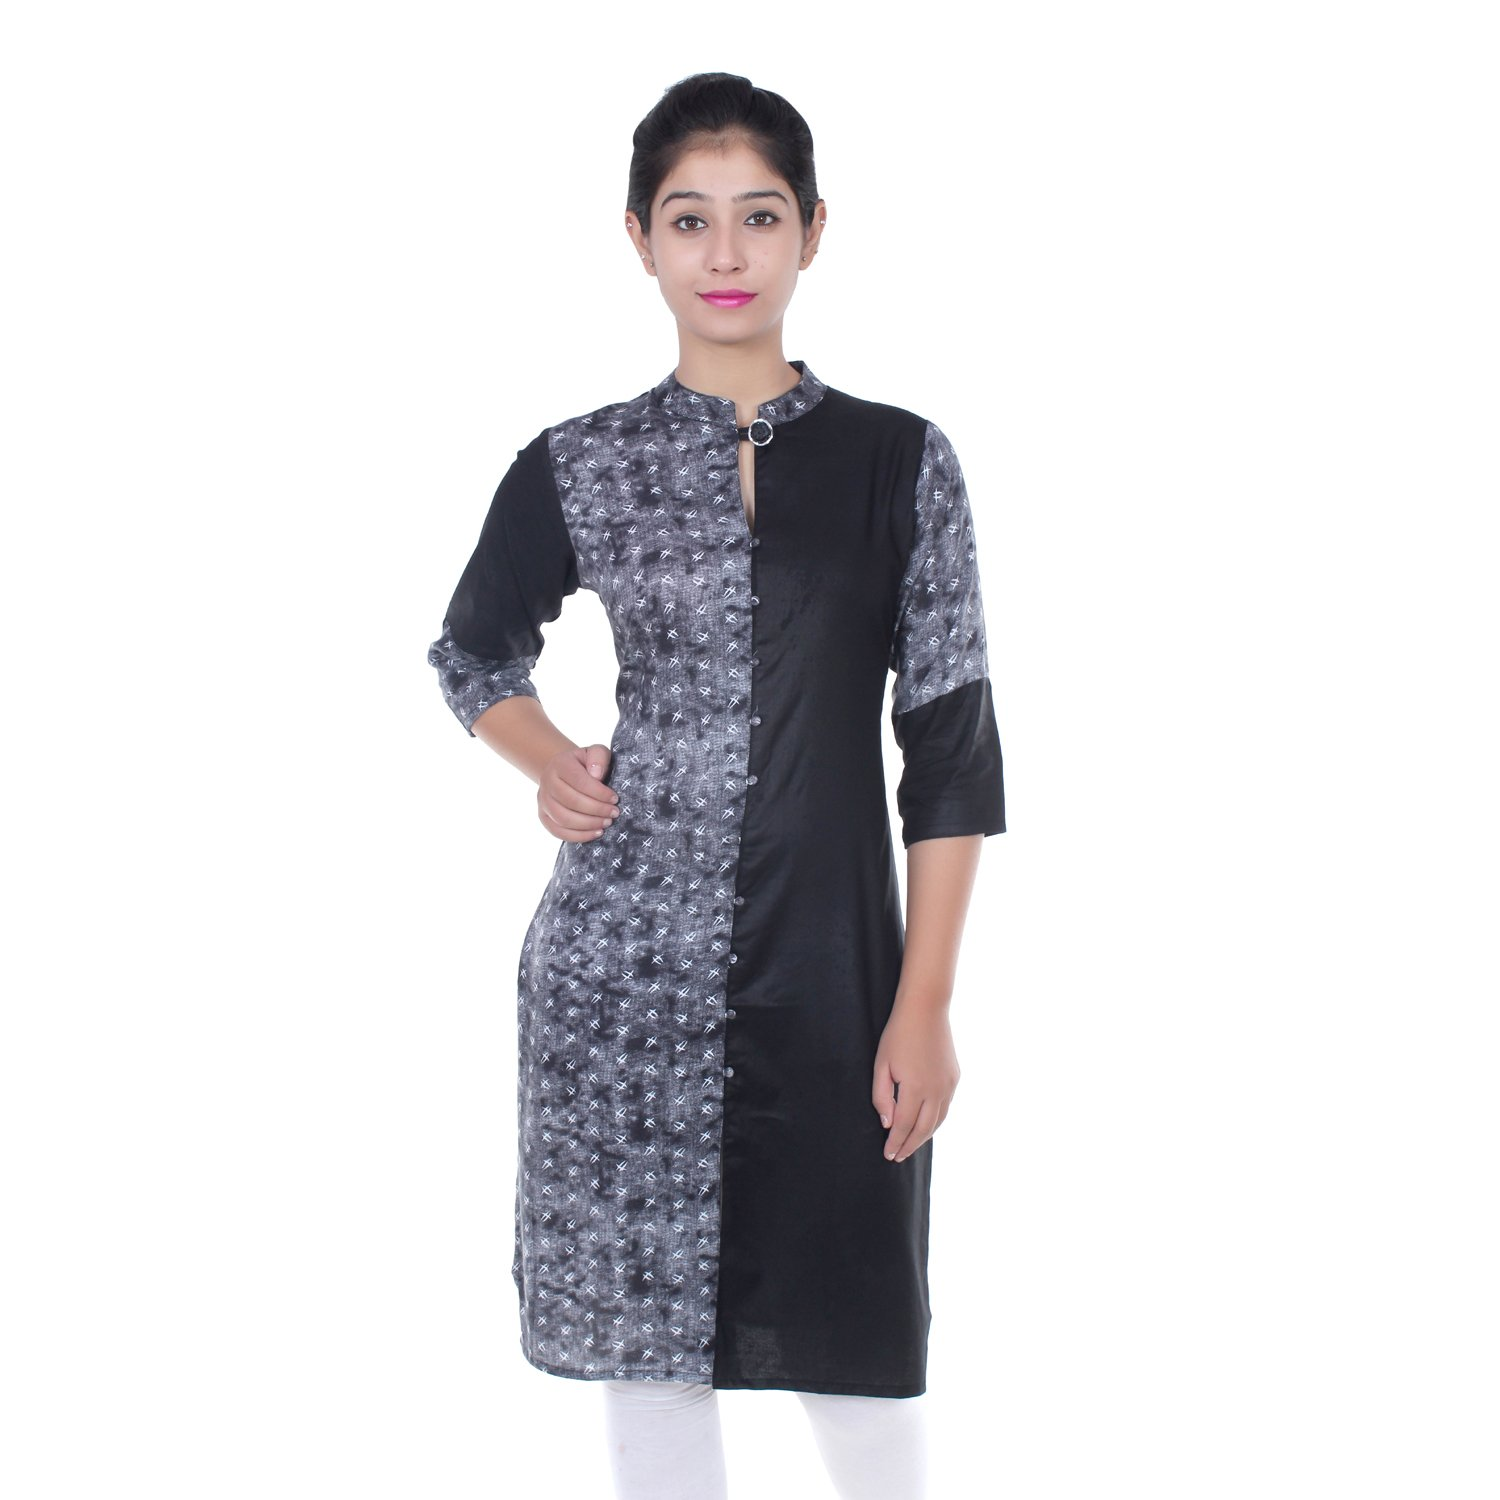 Chichi Indian Women Kurta Kurti 3/4 Sleeve Medium Size Plain with One Side Printed Straight Black-White Top by CHI (Image #2)